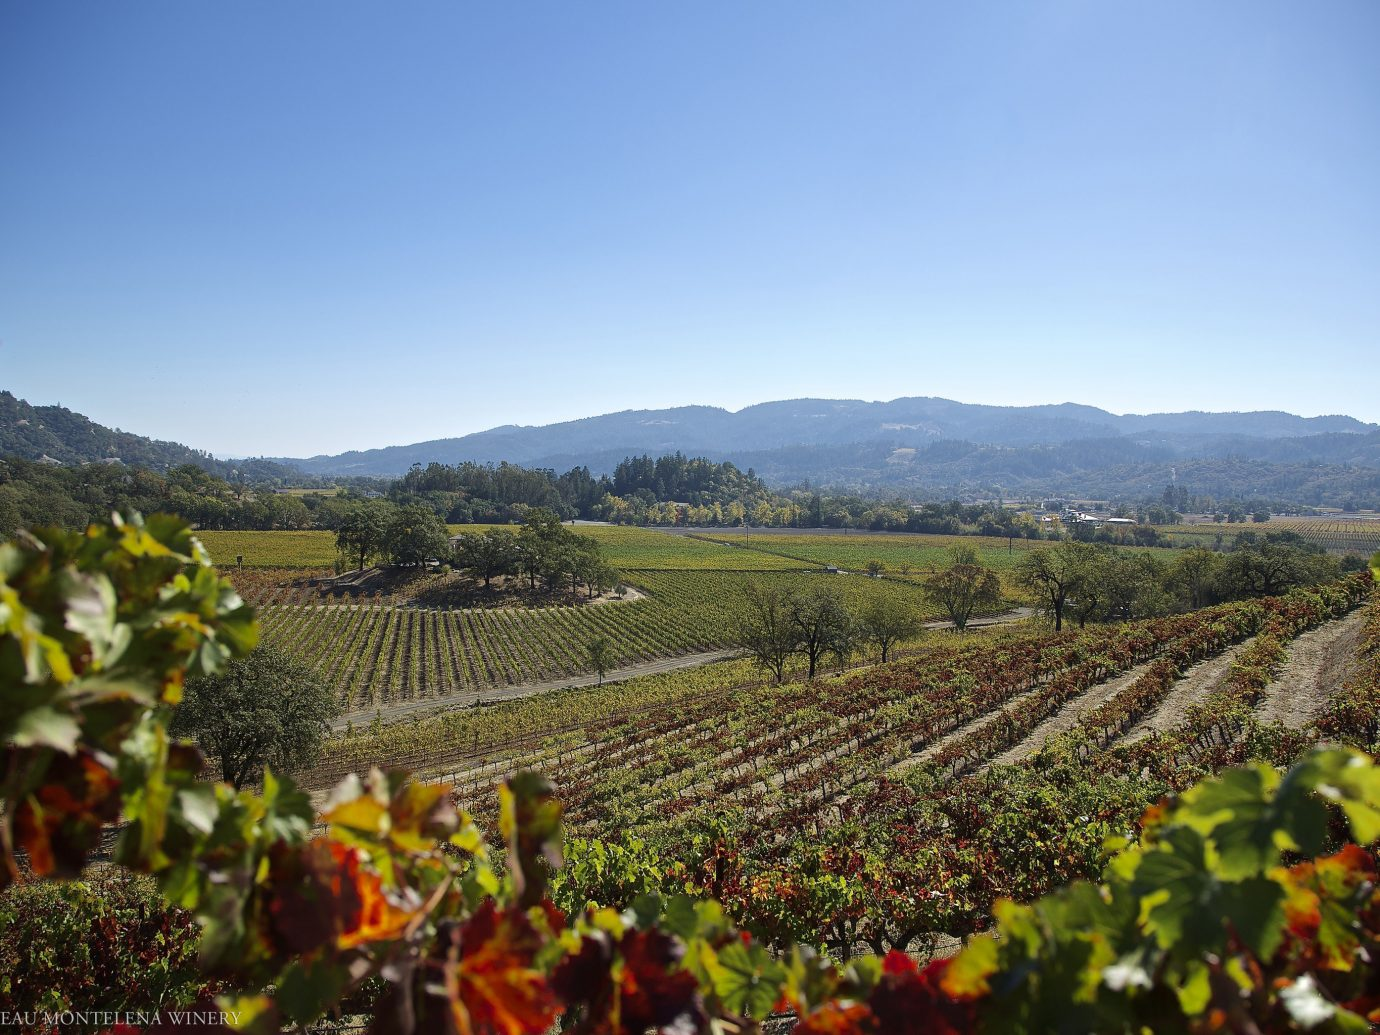 Food + Drink sky outdoor grass agriculture mountain Vineyard flower field hill rural area Nature valley plantation autumn